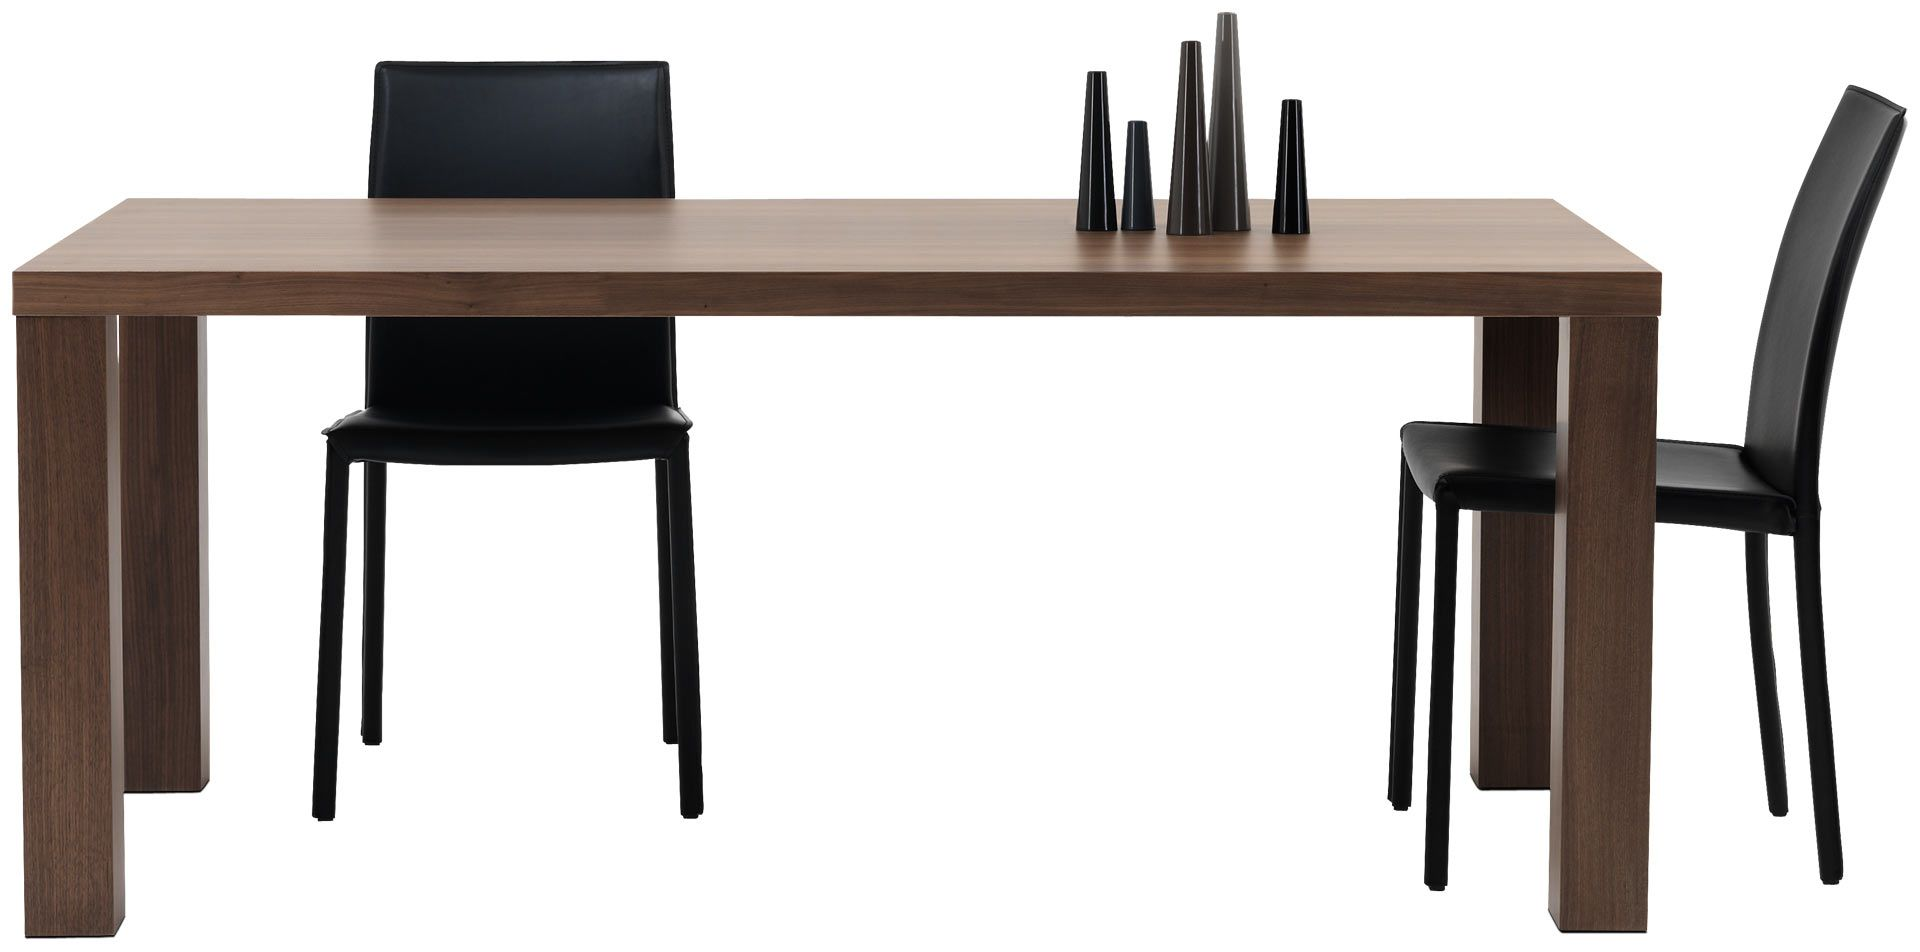 Modern Dining Tables - Contemporary Dining Tables - BoConcept $749